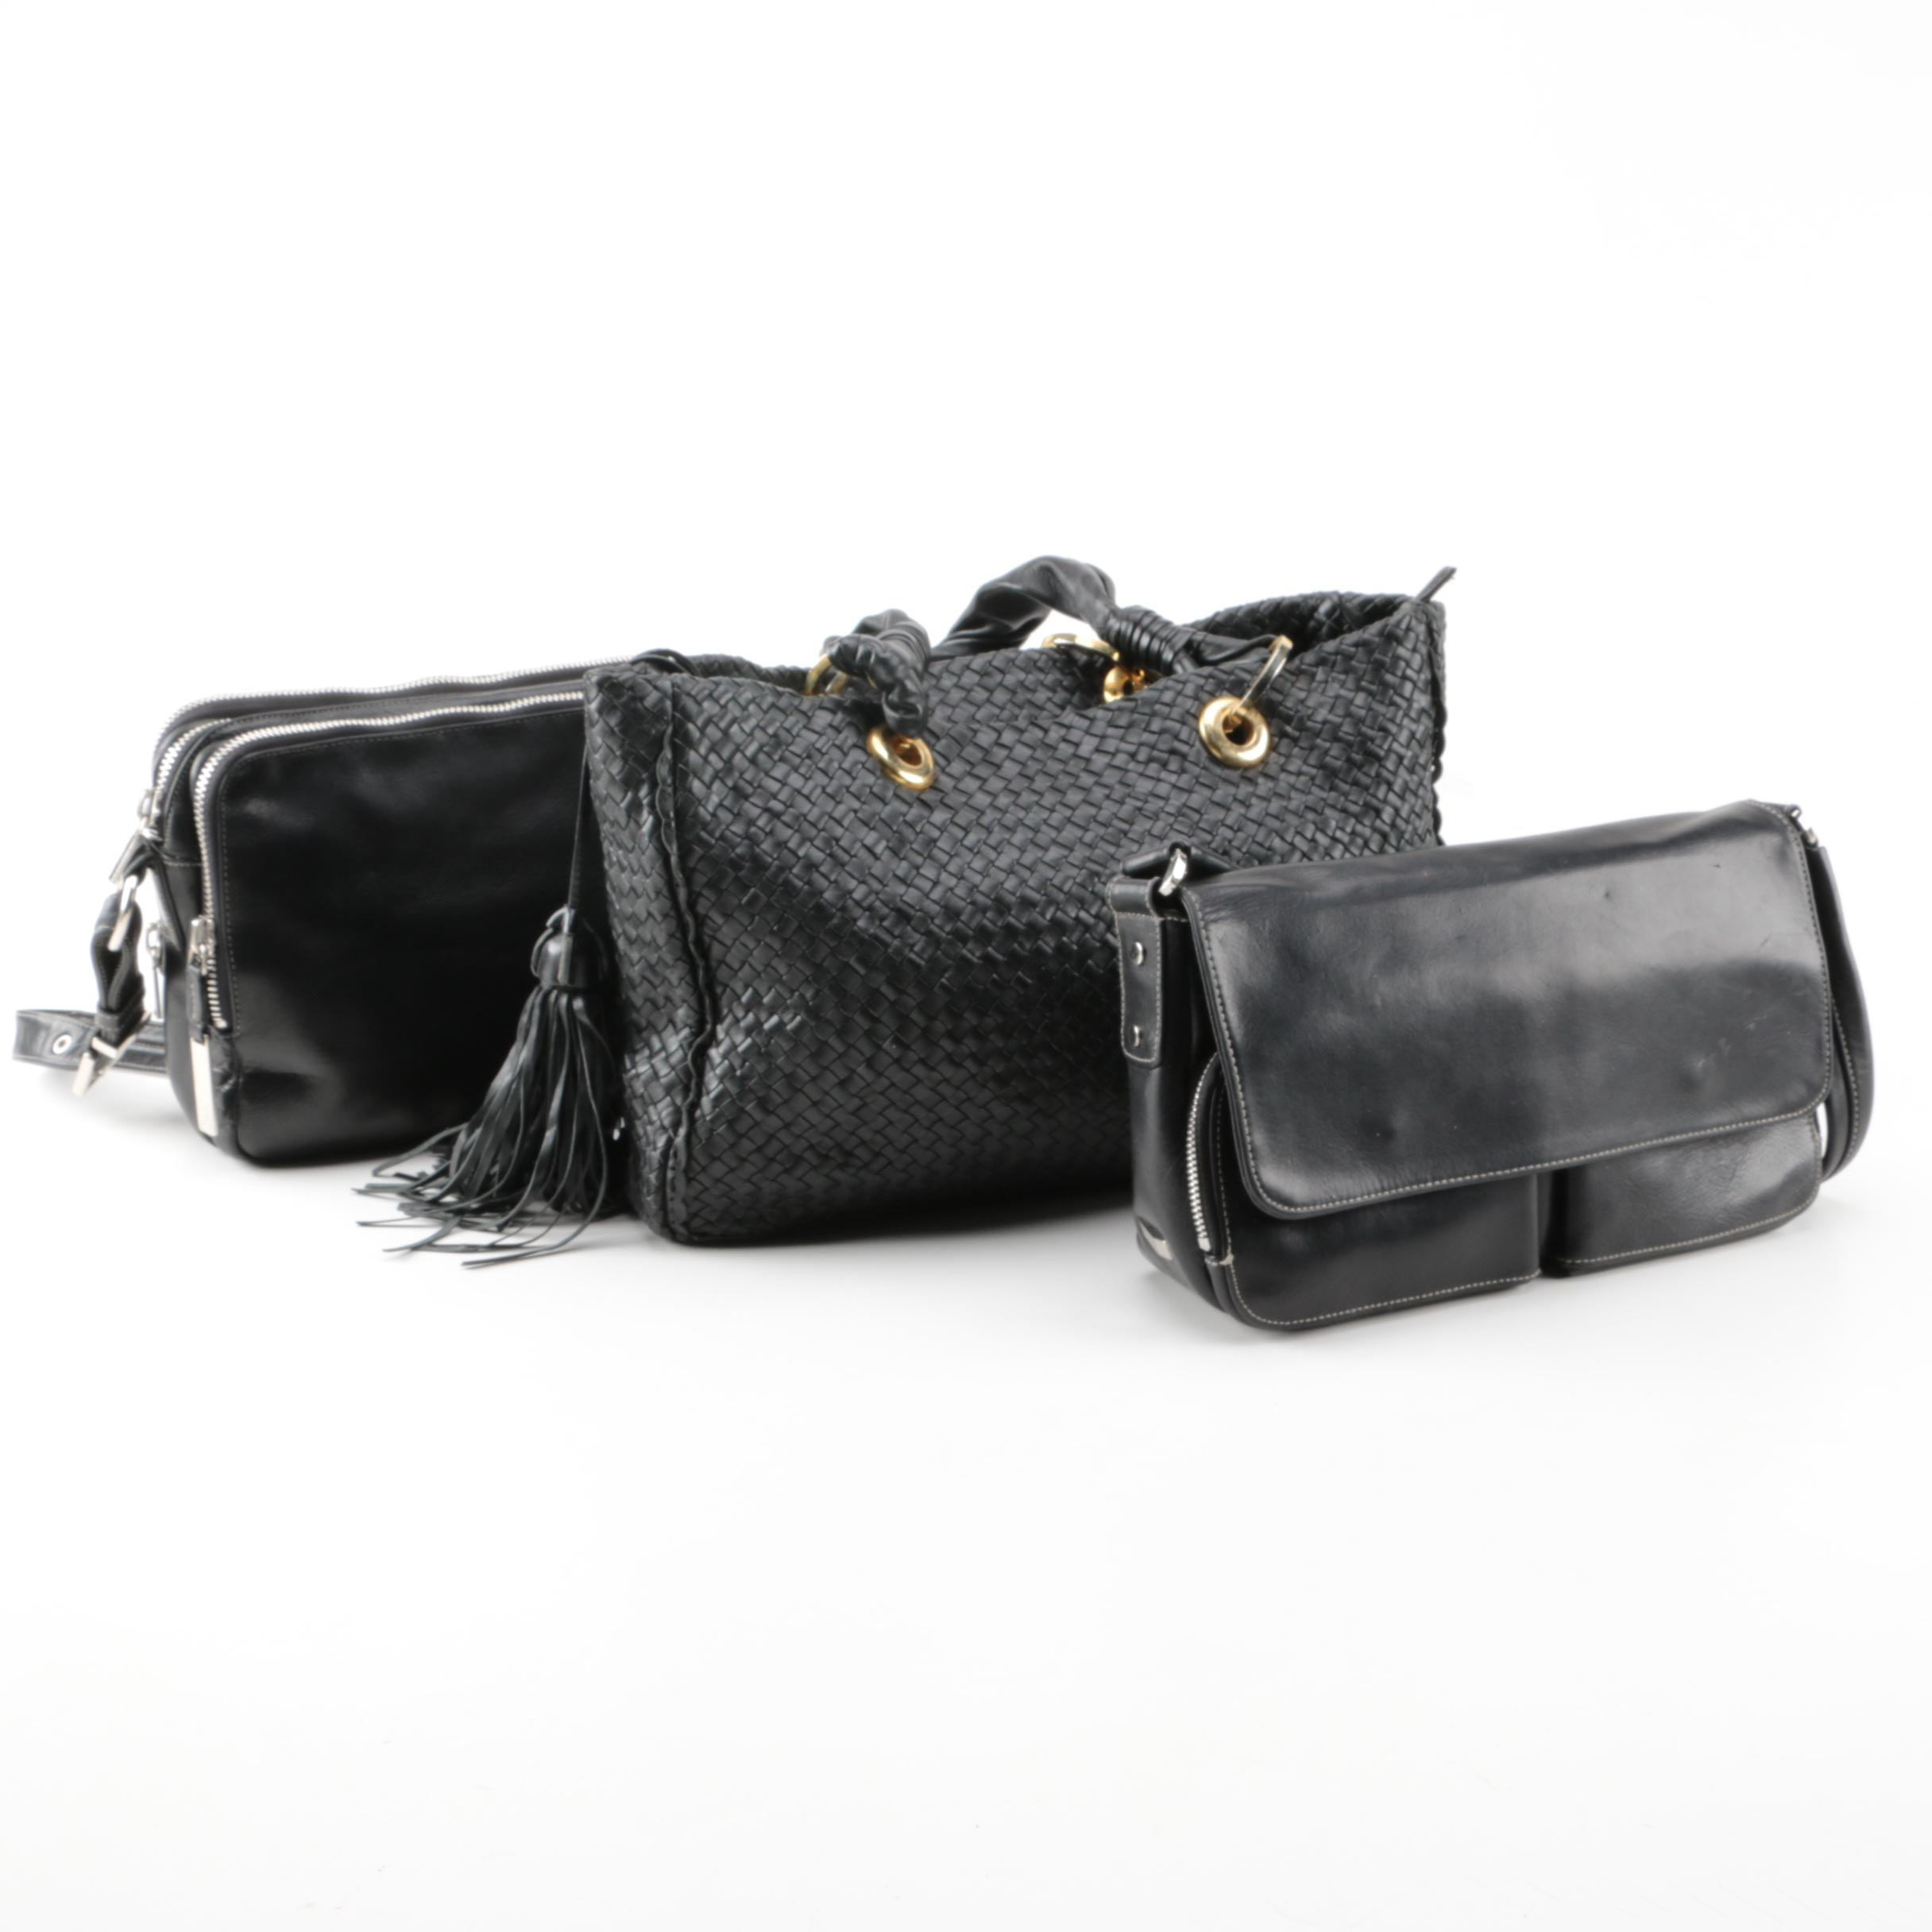 Black Leather Handbags with Perlina